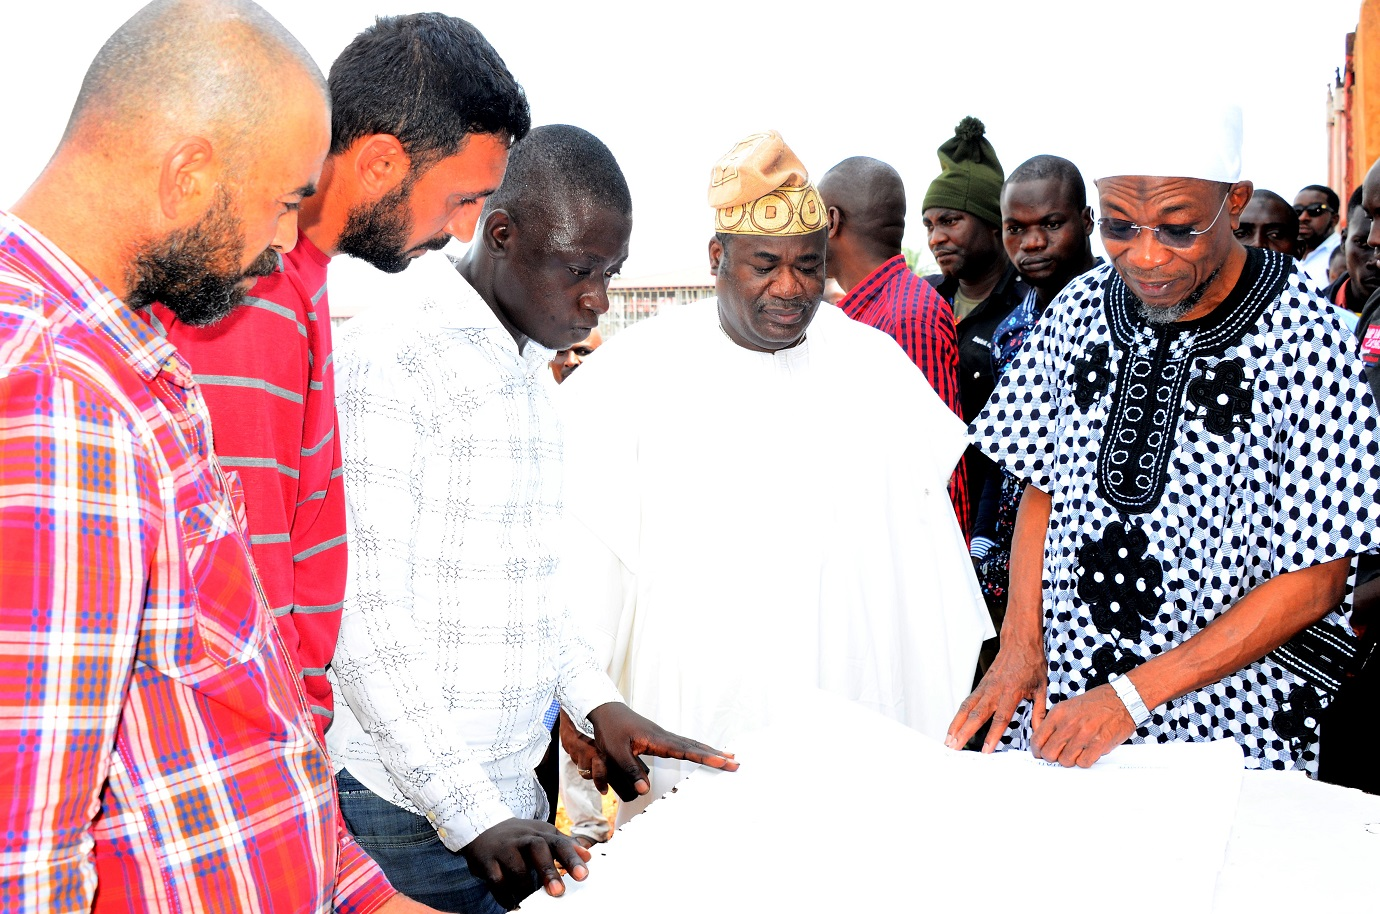 Governor, State of Osun, Ogbeni Rauf Aregbesola (right), Site Engineer, Ogundele Adedamola (3rd left),Chief Rotimi Obeisun (2nd right),Surveyor, Mr. Muray Yilmat (2nd left) and Foreman, Bektas Kocut (left), viewing the building prototype of Osogbo Grammar School, during an Inspection Tour to the ongoing school building site  at Osogbo high School on Saturday 29/08/2015.